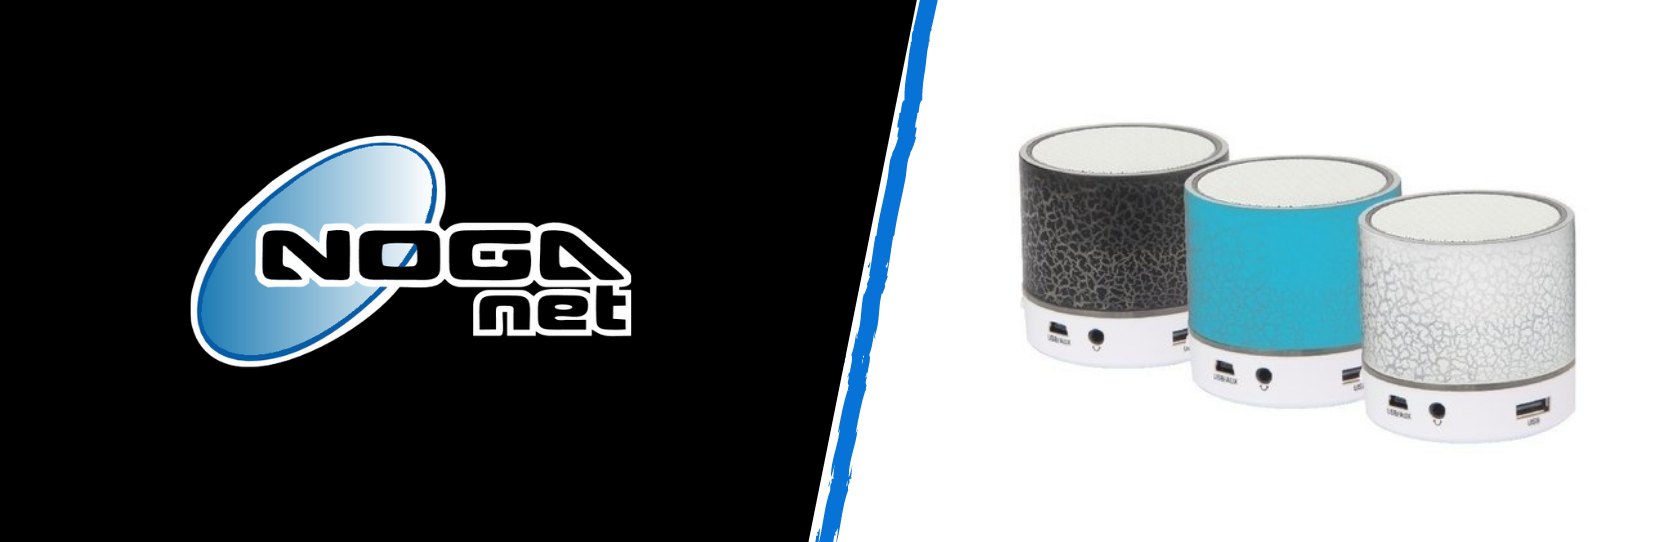 Parlante Bluetooth Led NOGA NGS-310